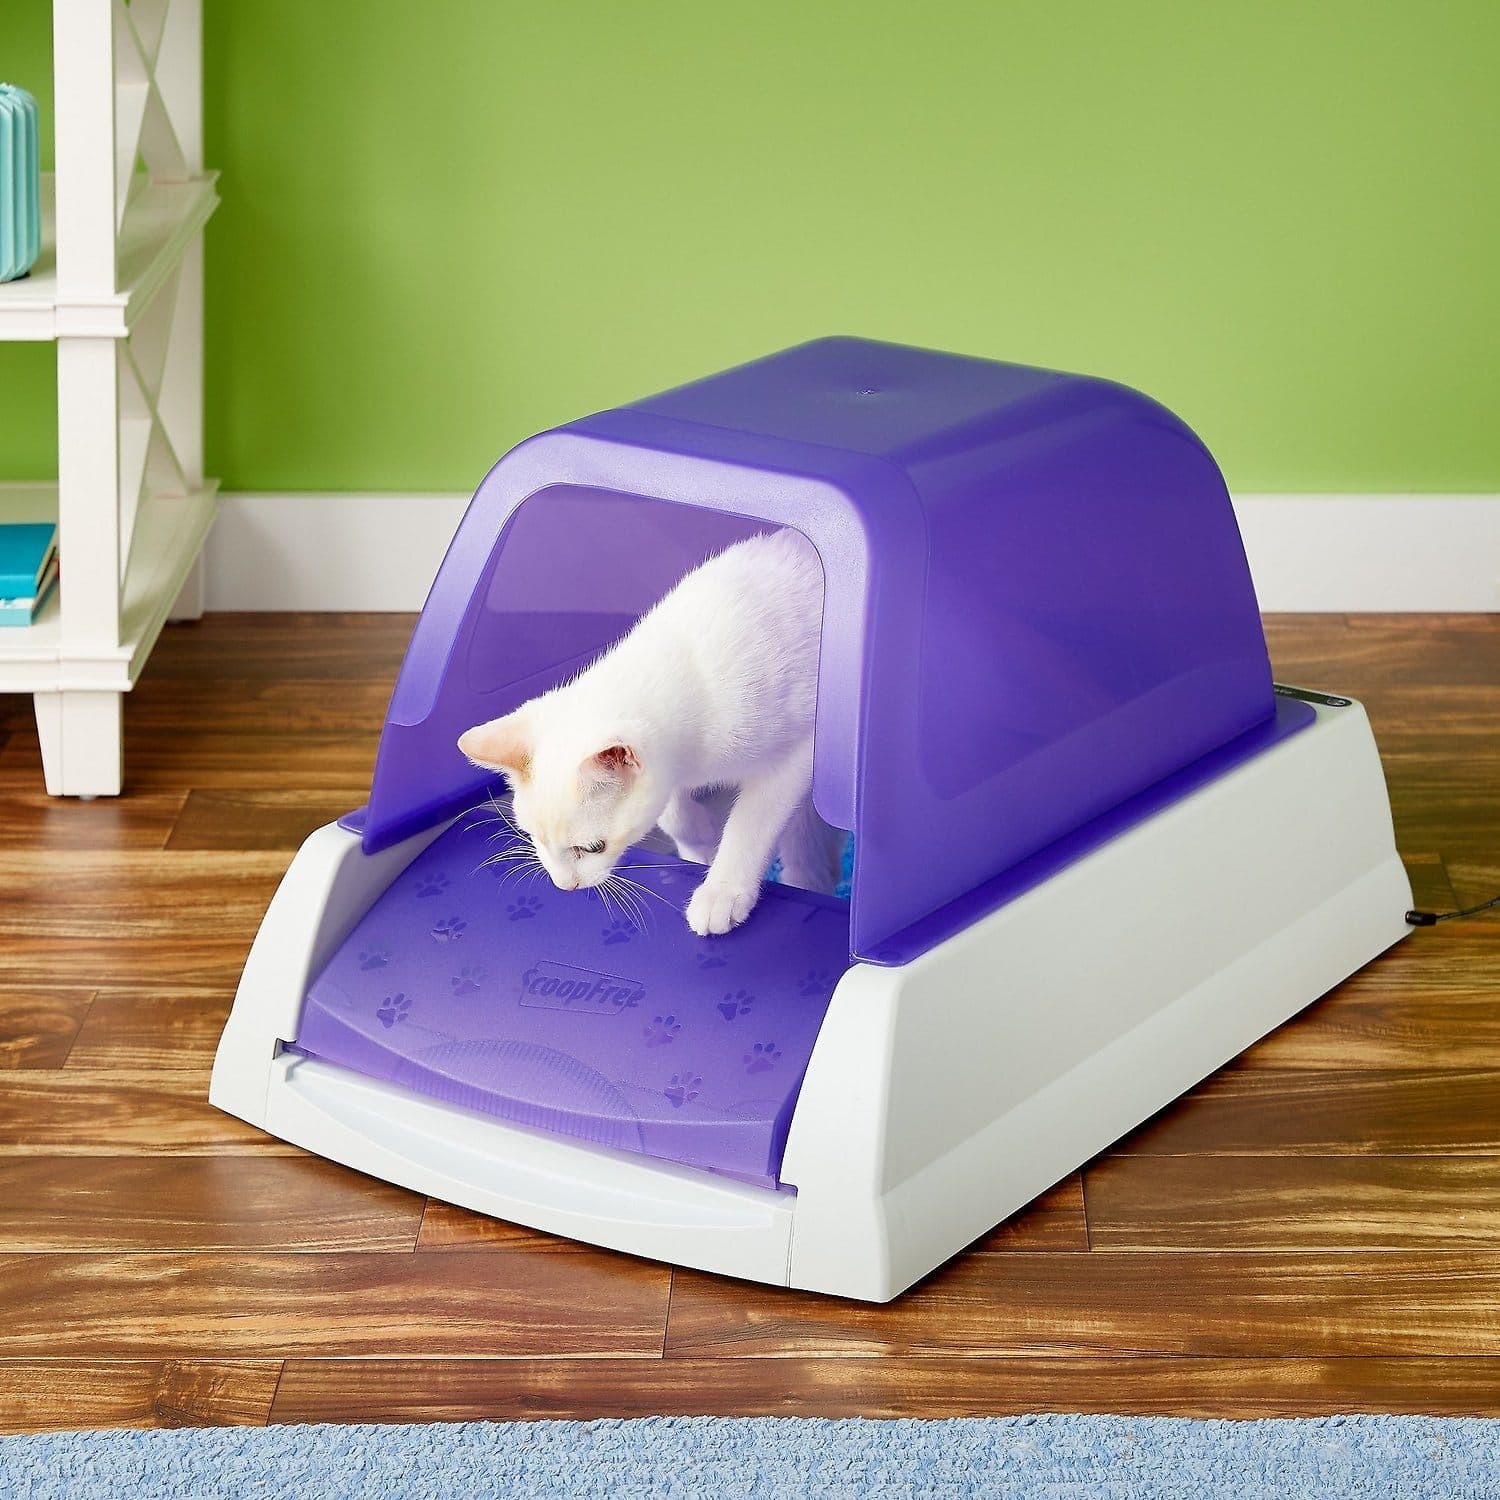 PetSafe ScoopFree Crystal Cat Litter-FI